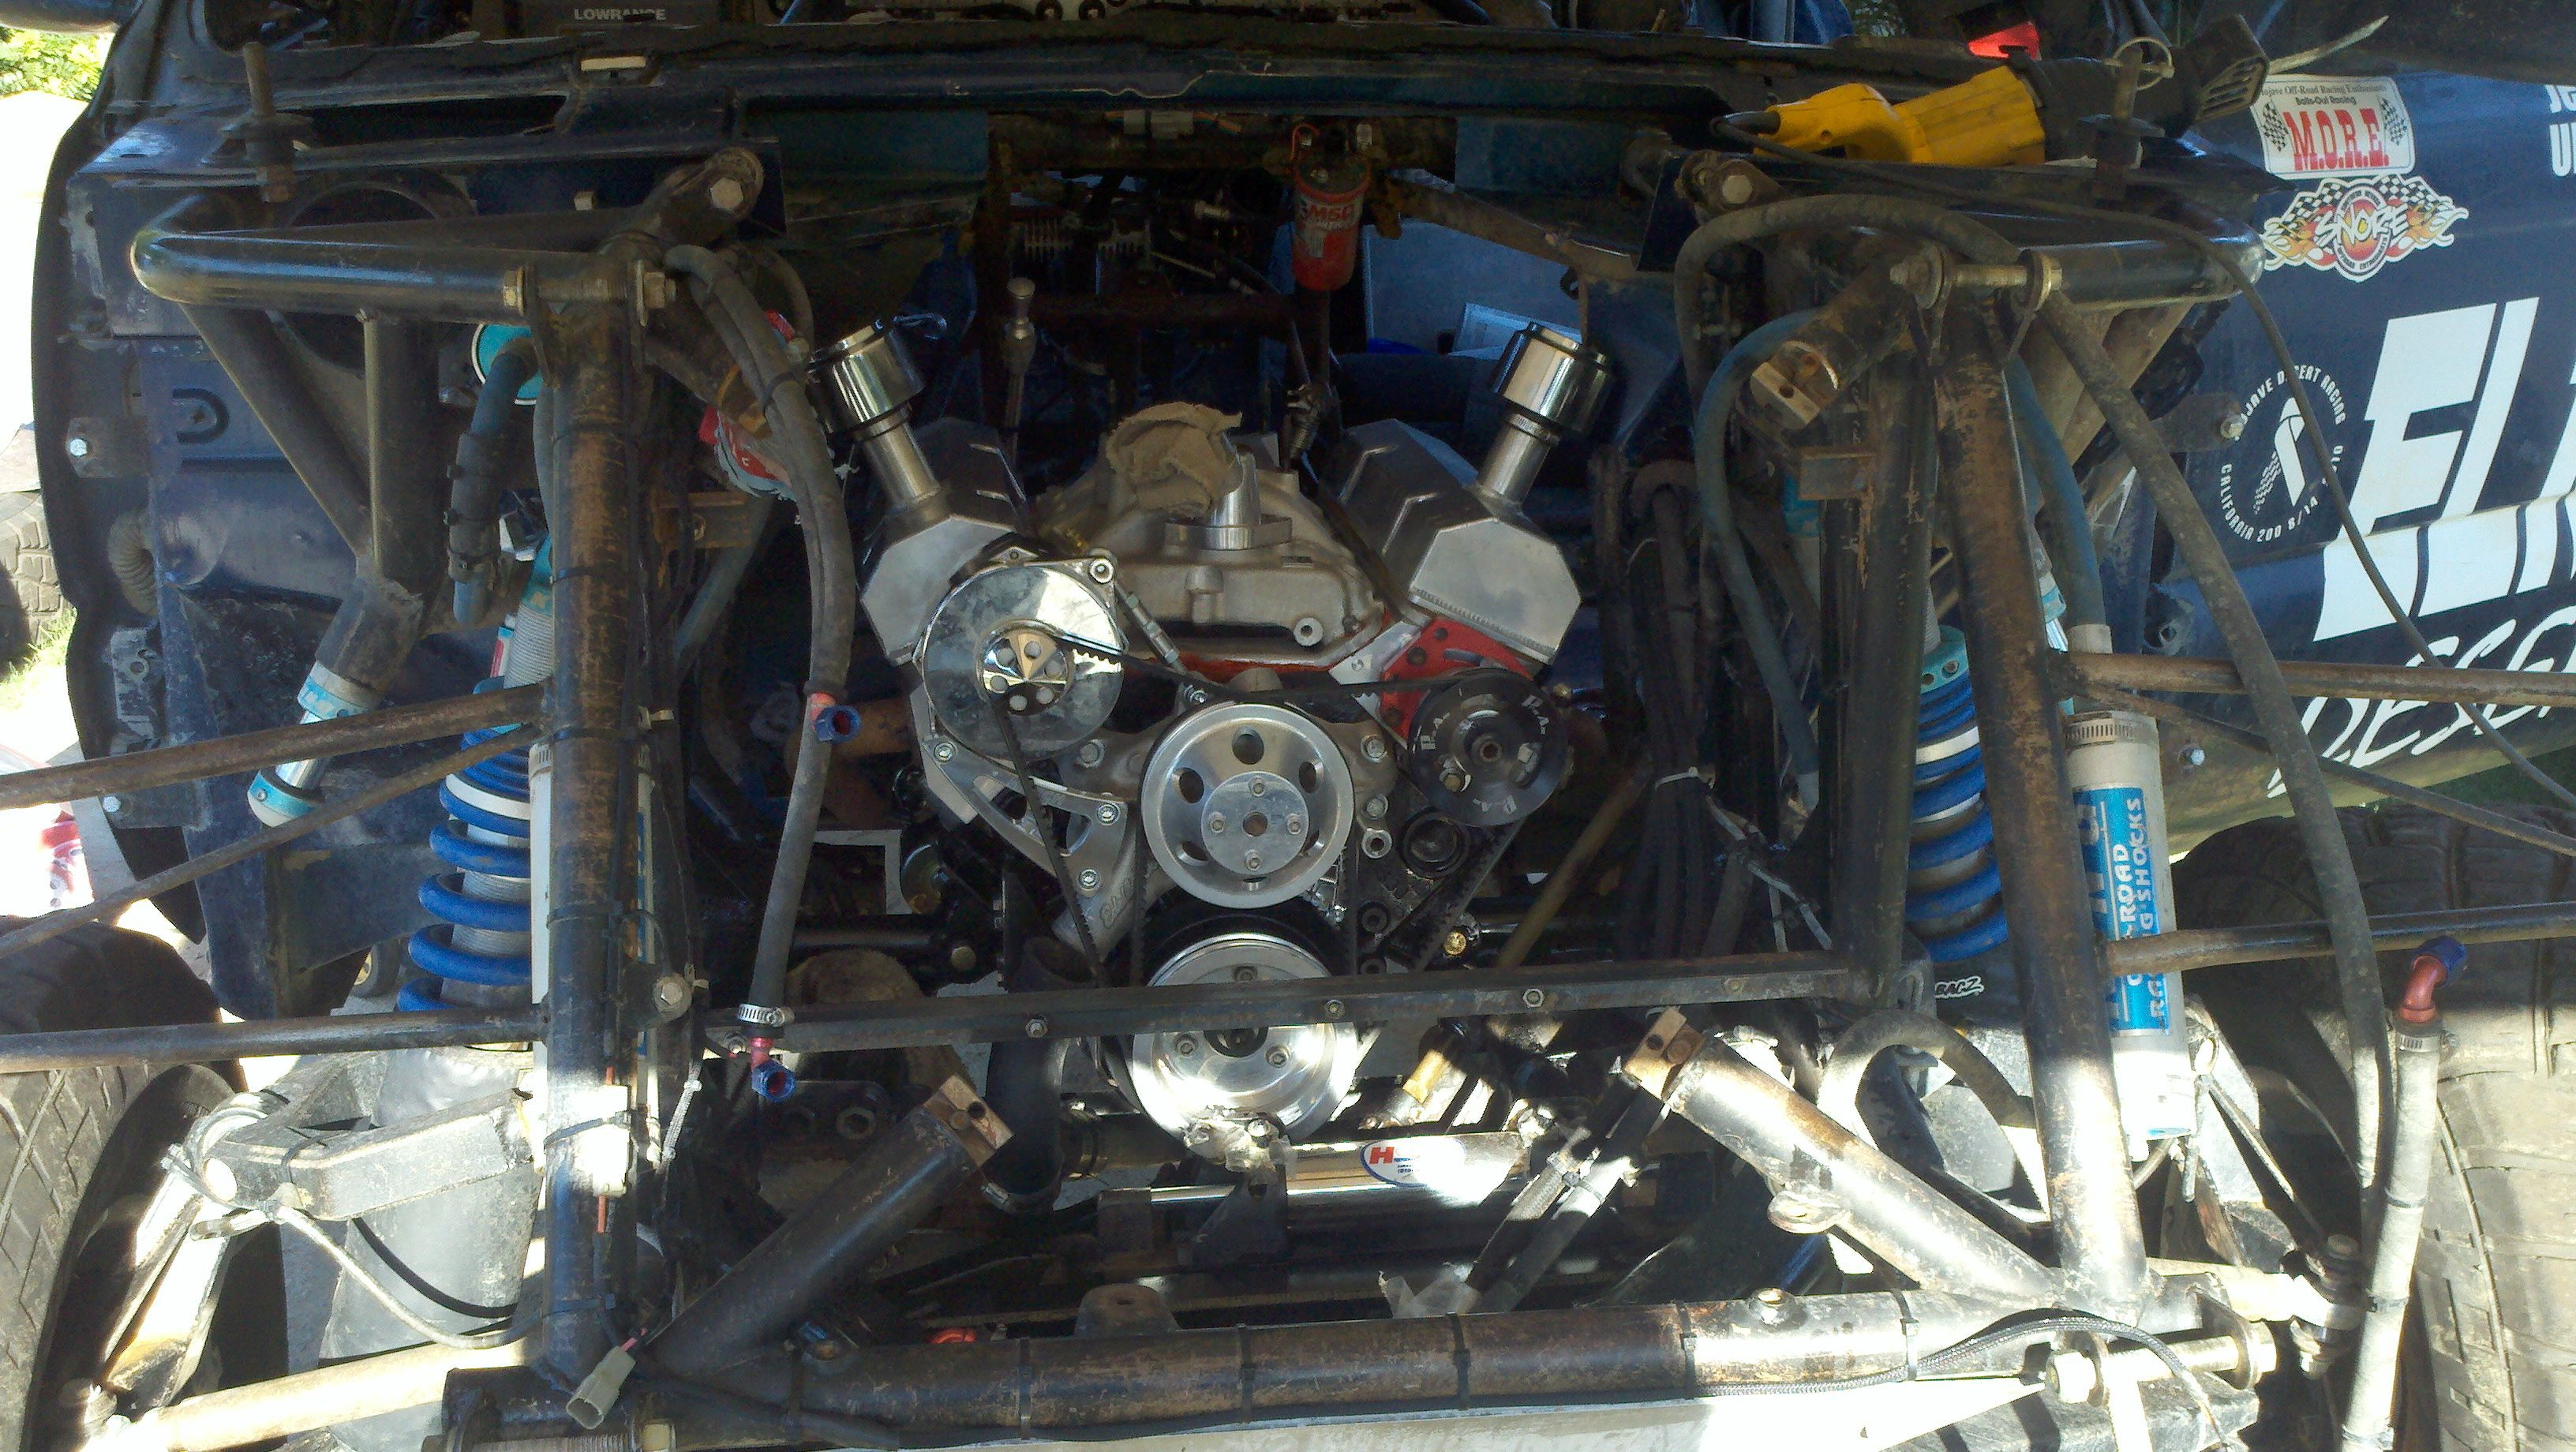 Blueprint engines customer jesus galvin has installed our bp3834ct1 blueprintengines crateengine chevy offroad racer bp3834ct1 aluminumheads flattappetcam dynotested warranty proenginebuilders engineinstall malvernweather Choice Image